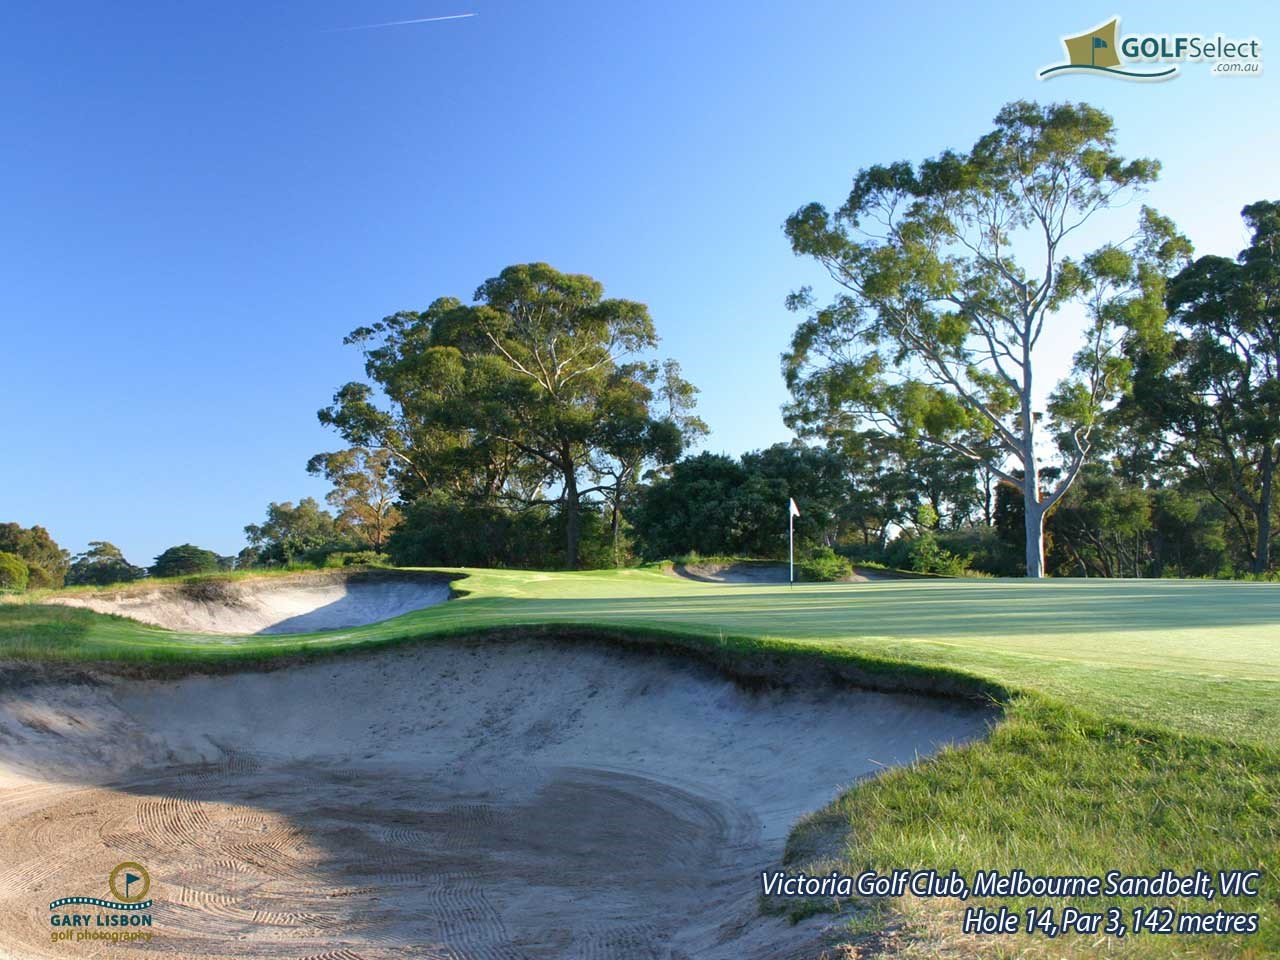 Victoria Golf Club Hole 14, Par 3, 142 metres